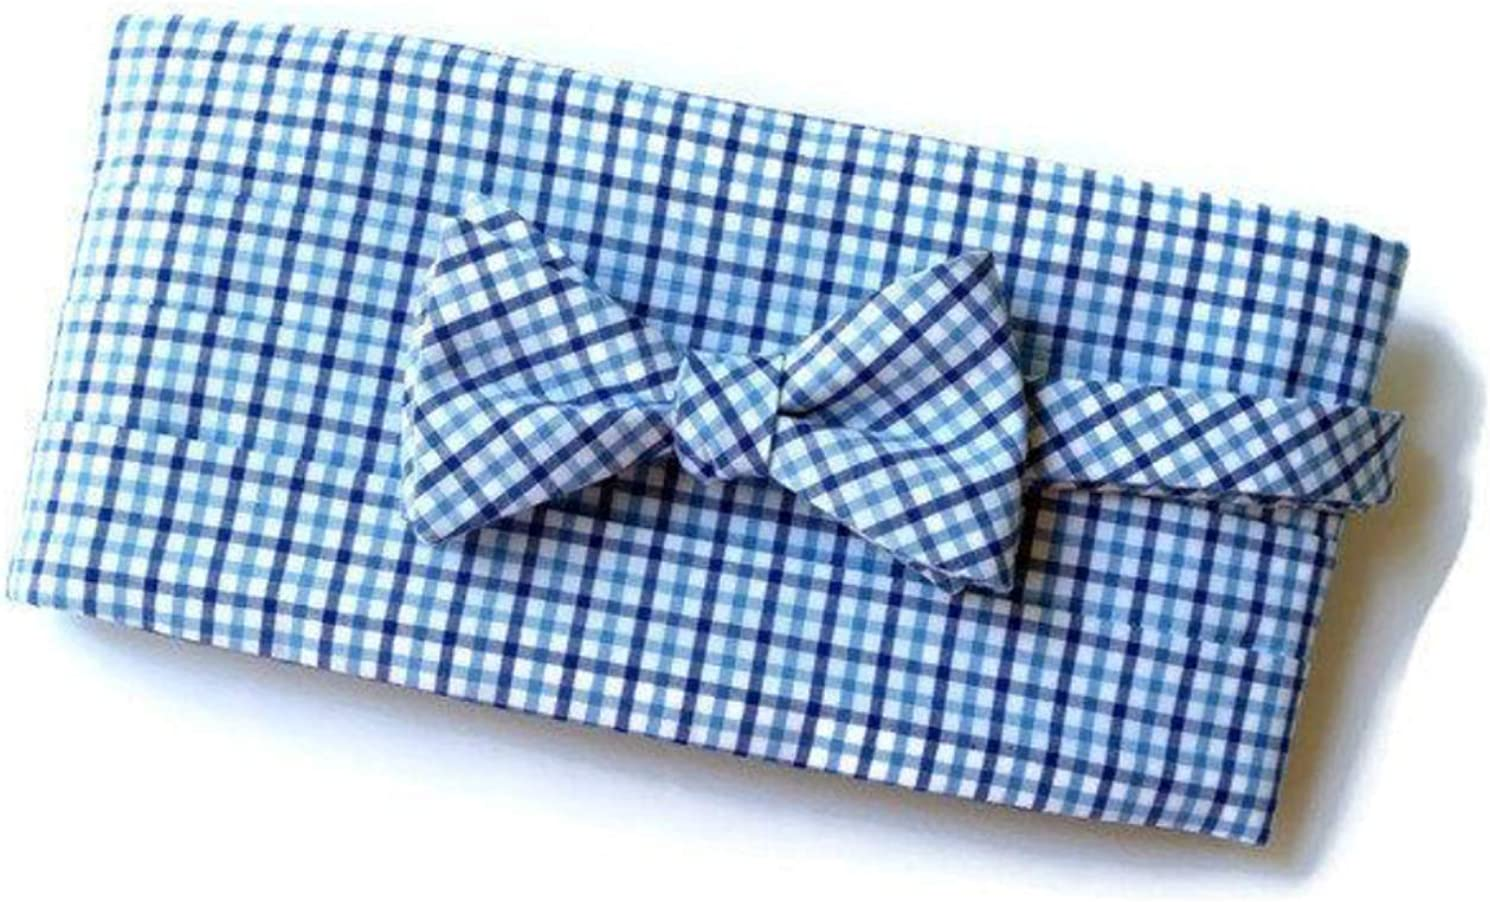 Navy and Blue Tattersall Tuxedo Set Tie Bow Ranking TOP7 Cummerbund SEAL limited product